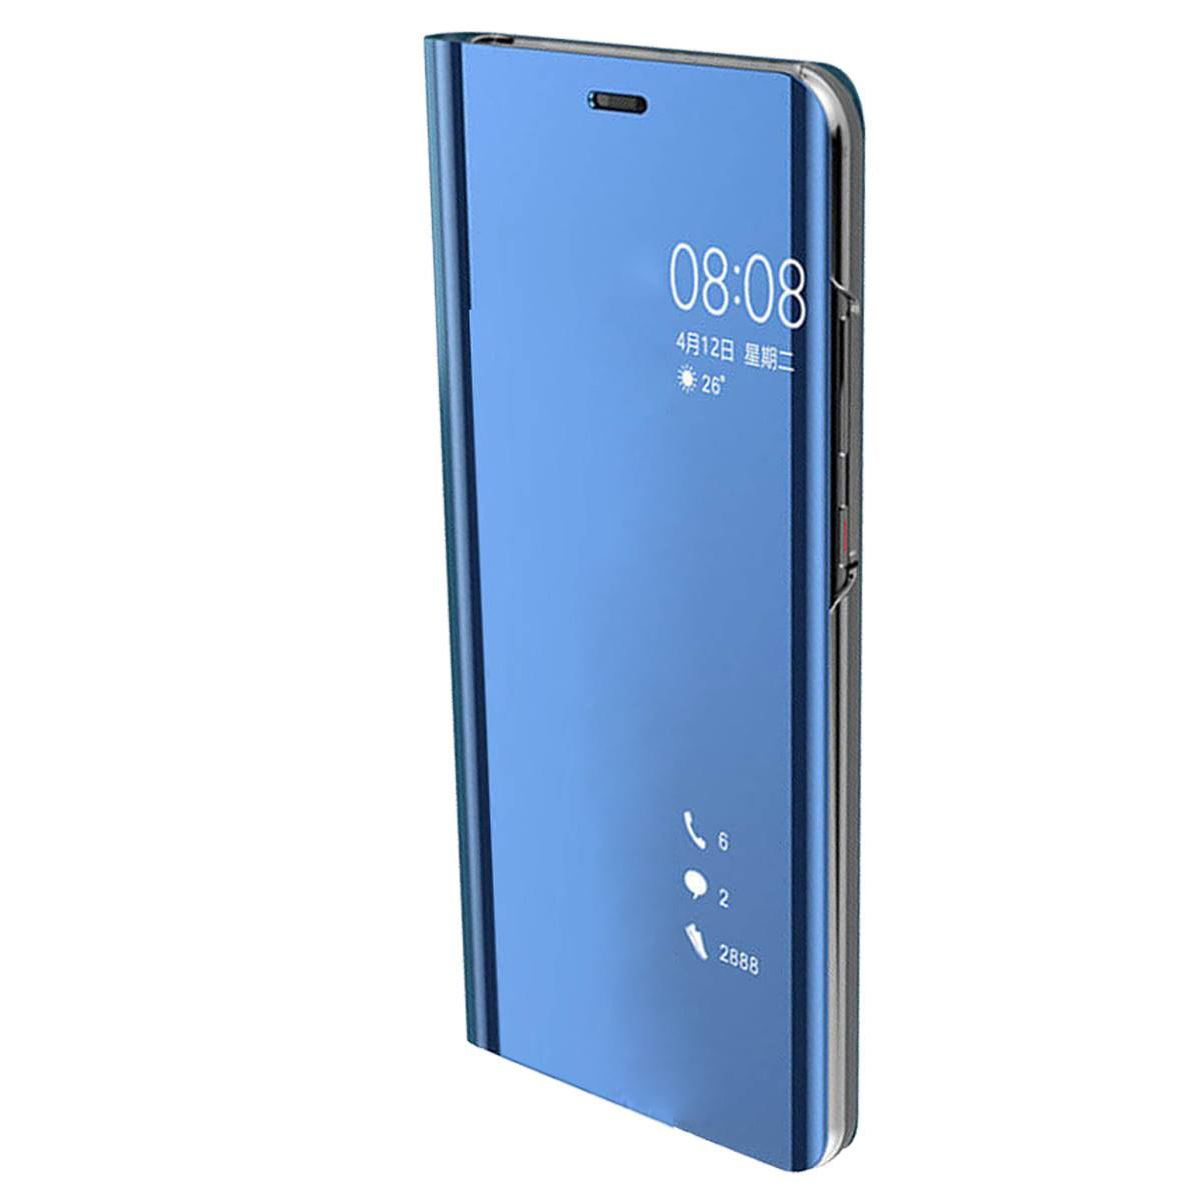 Huawei P10 Case Smart View Mirror Flip Stand Cover - Blue